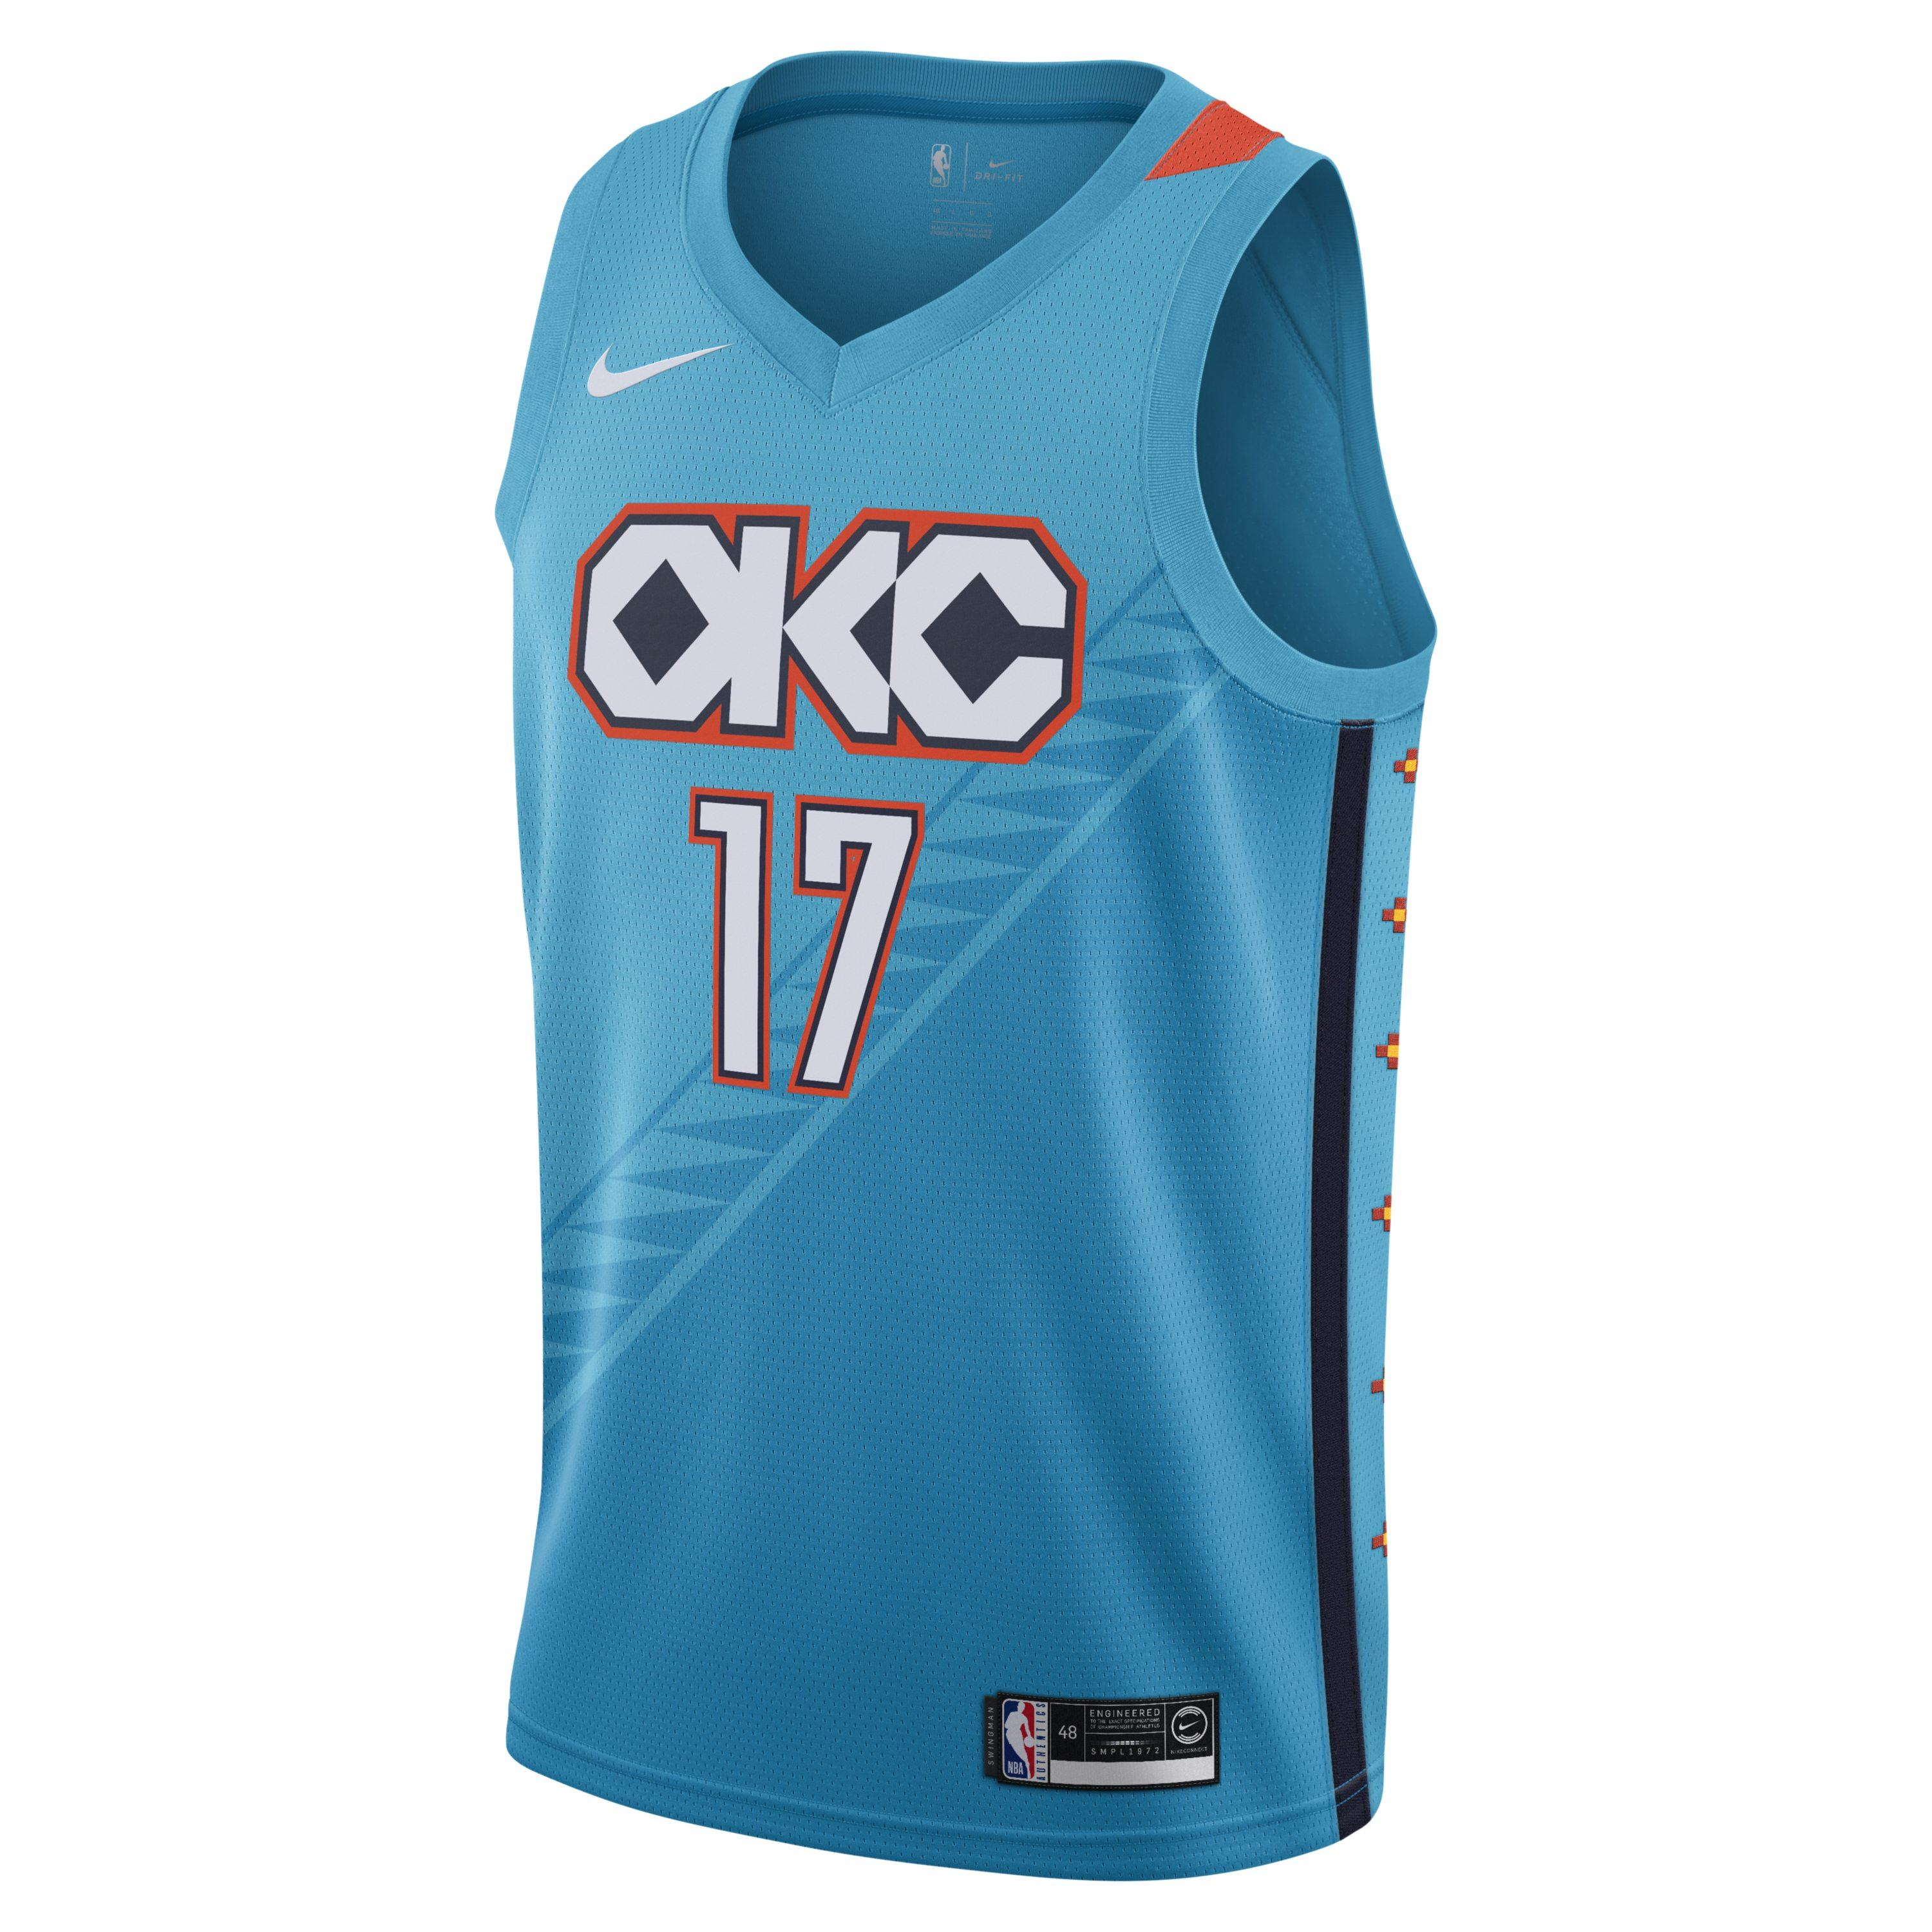 5107ec71e8b Tap to visit site. Nike - Blue Russell Westbrook City Edition Swingman (oklahoma  City Thunder) Nba Connected Jersey